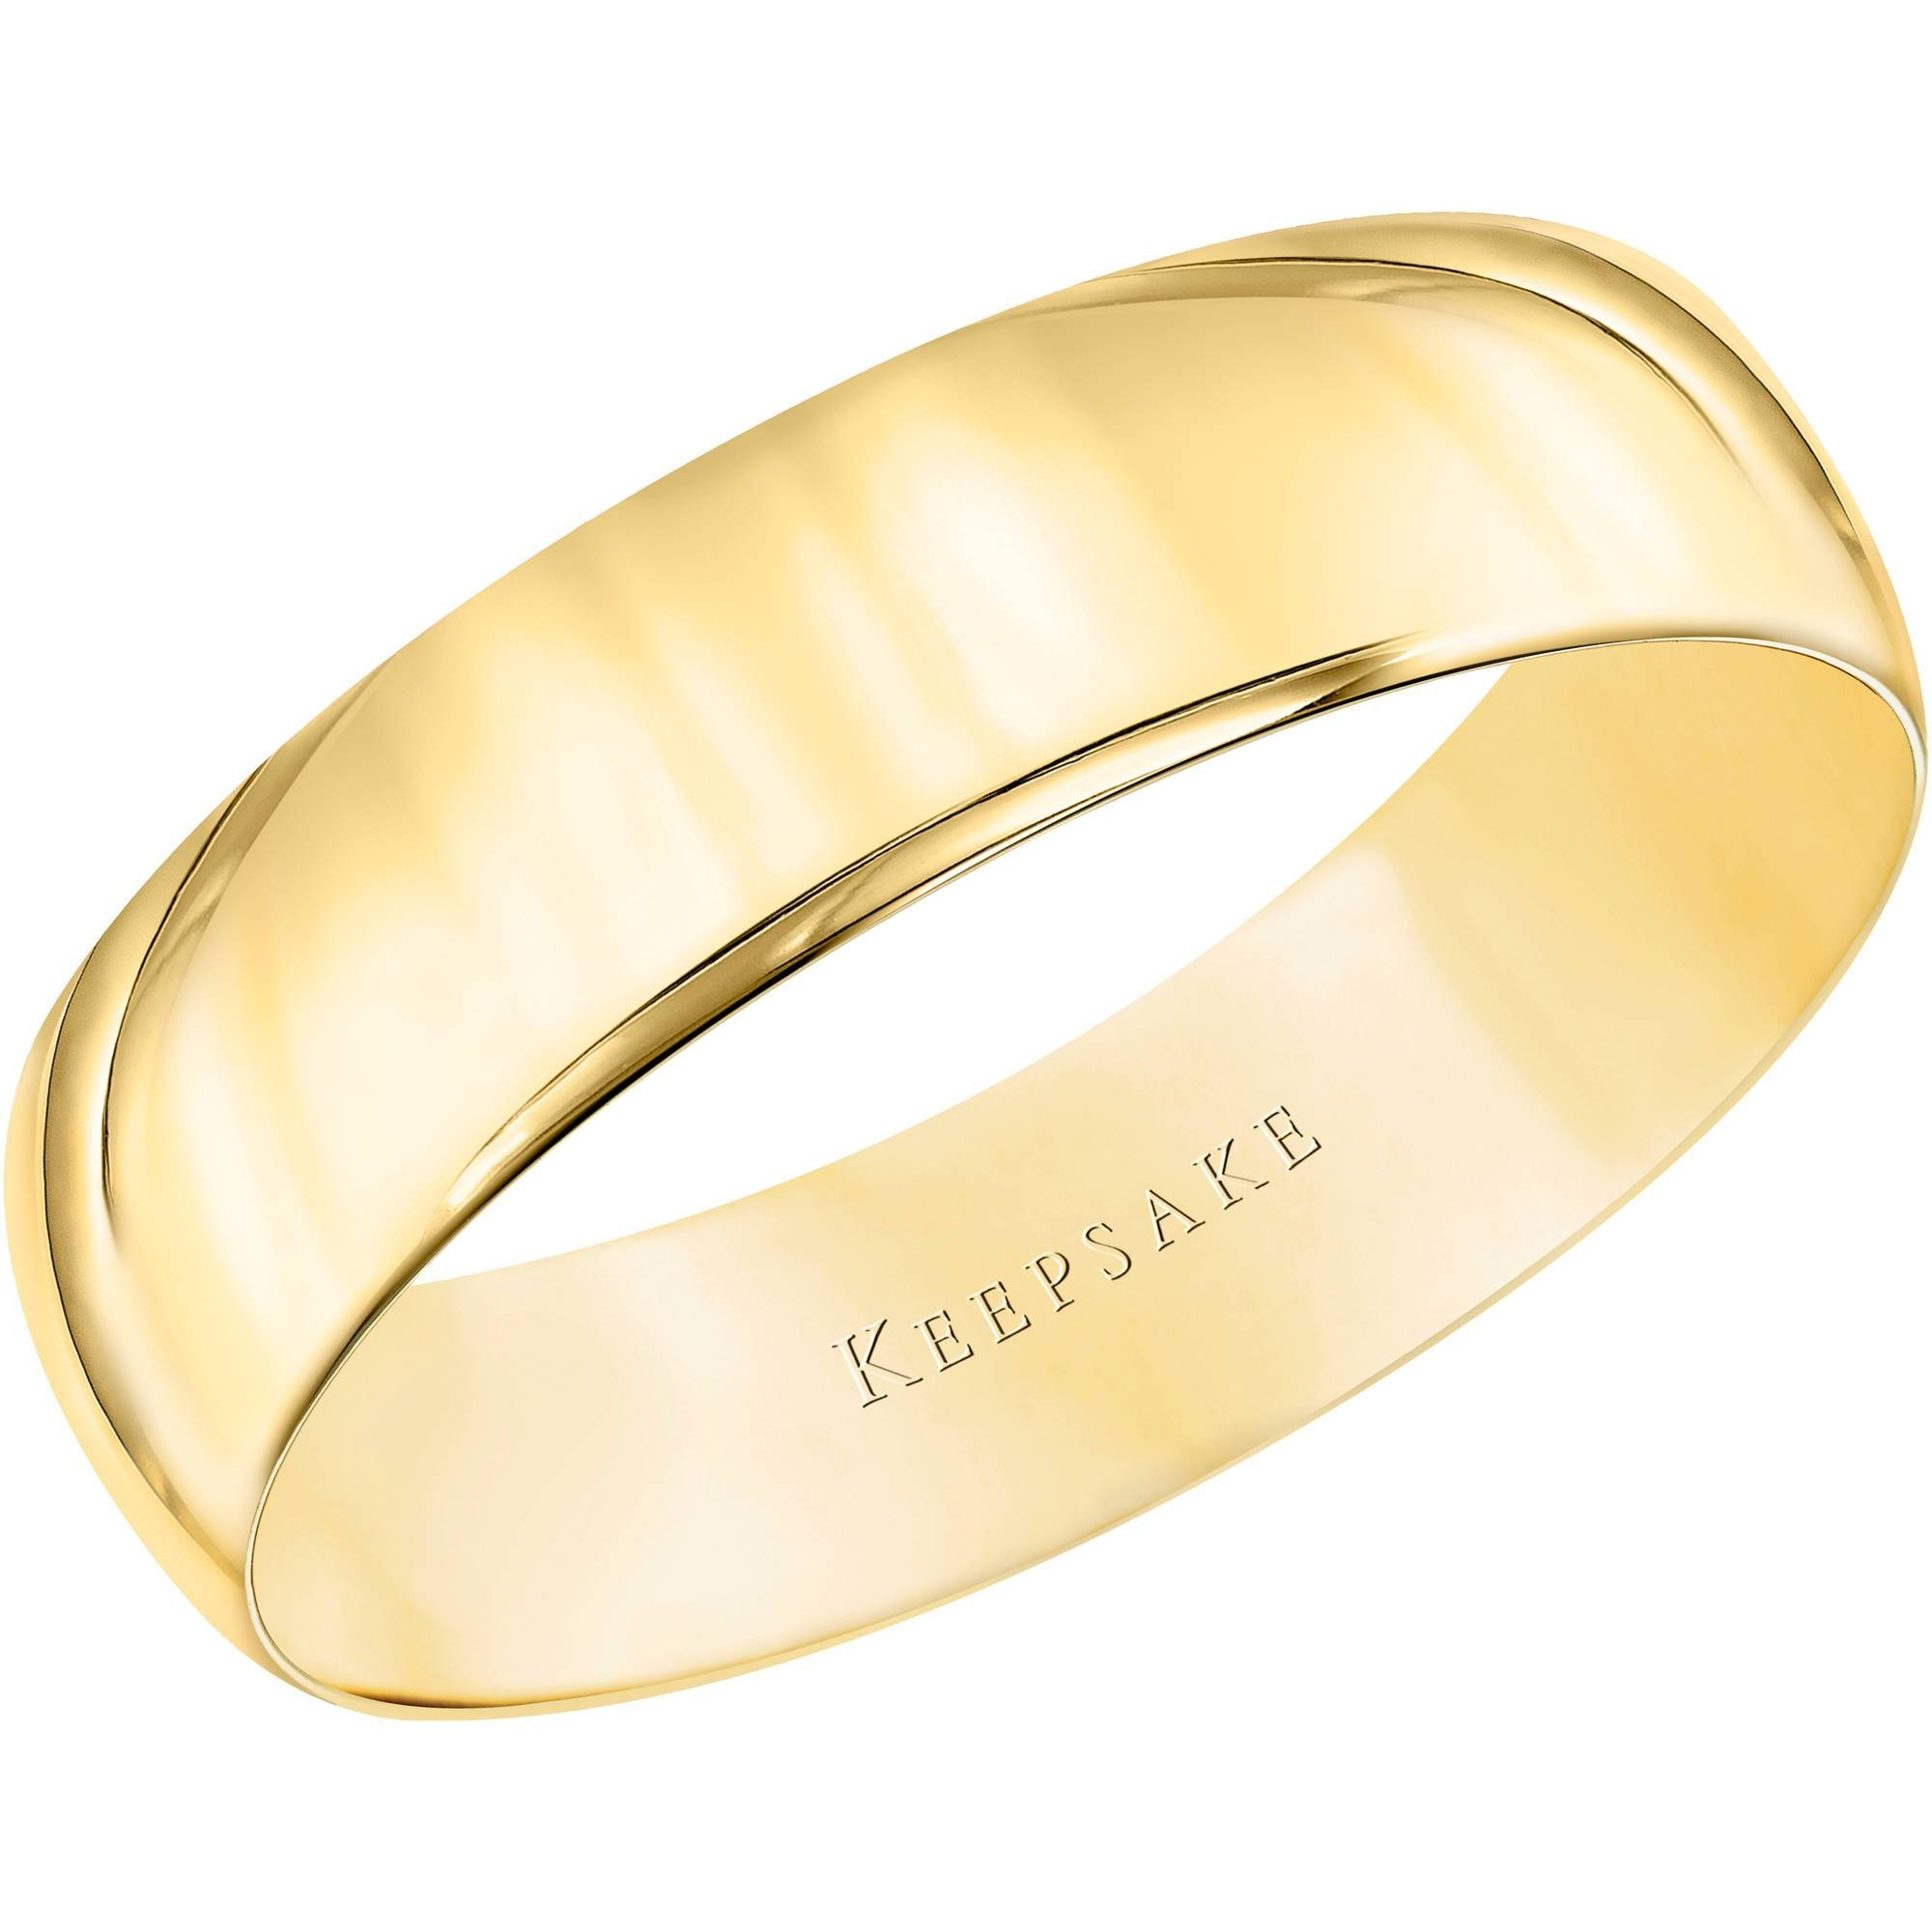 Keepsake 10Kt Yellow Gold Wedding Band With High Polish Finish Regarding Wedding Bands For Women Walmart (View 8 of 15)